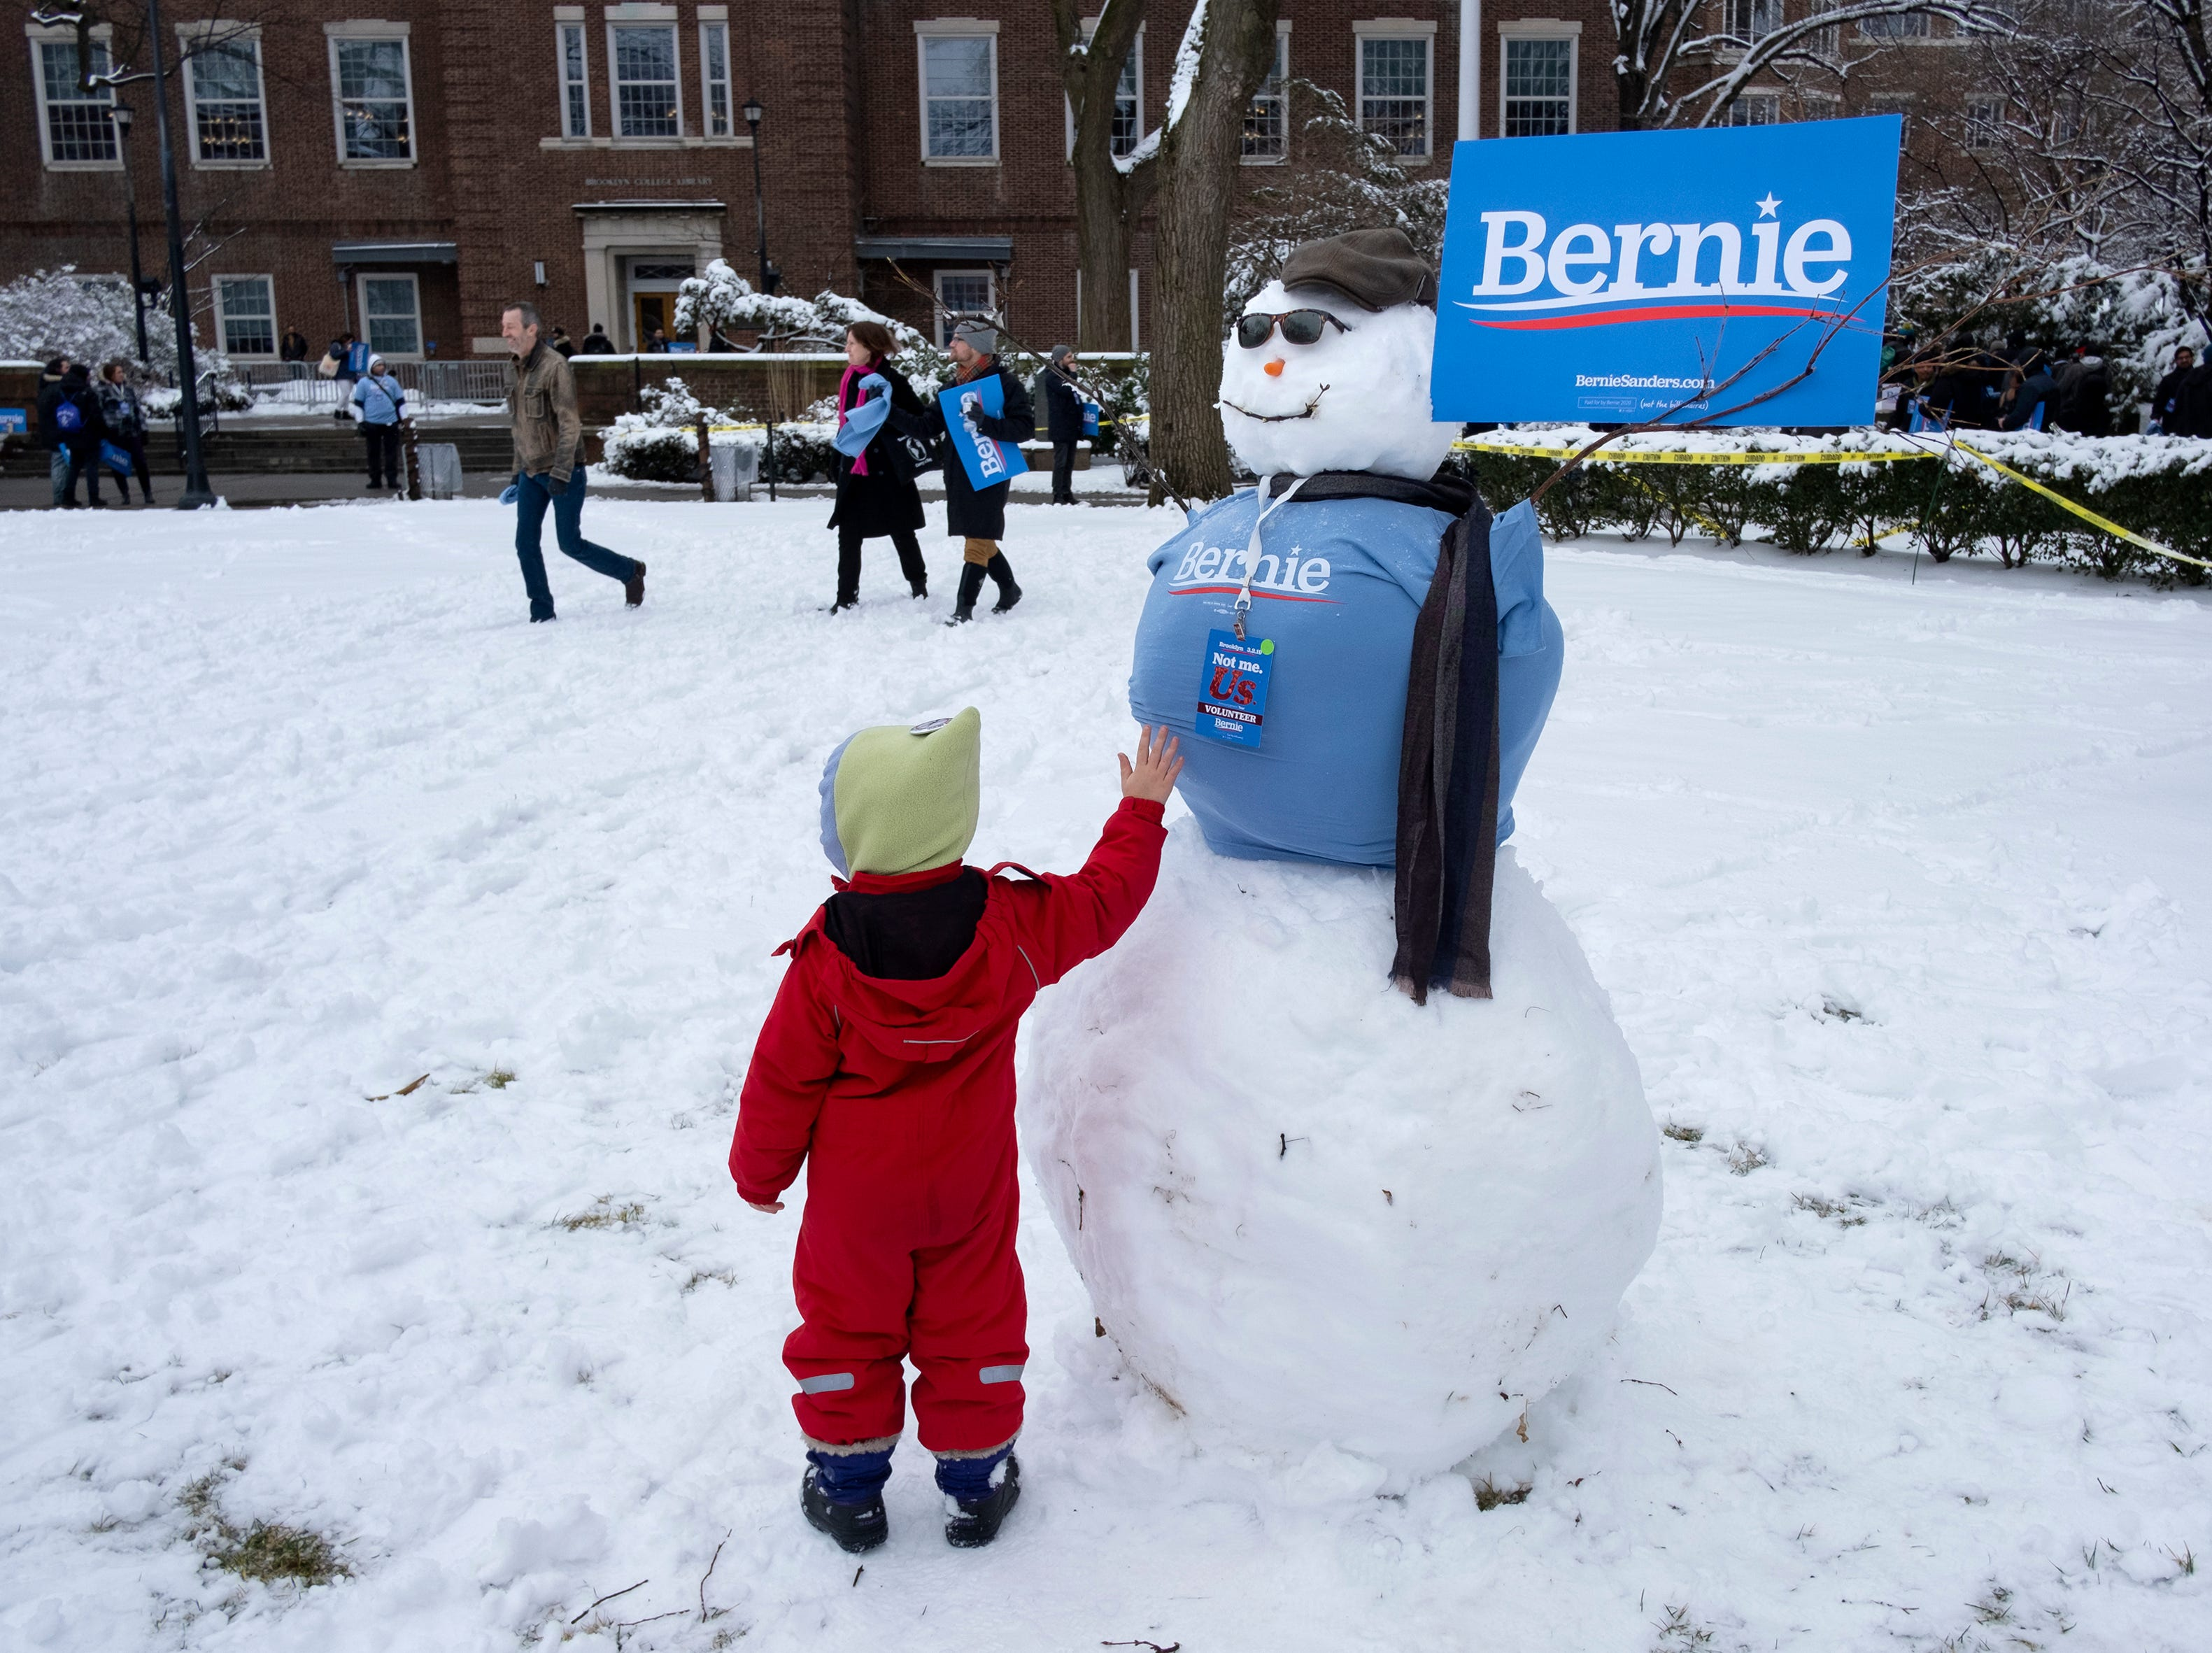 Katherine Bonavita, 4, of New York, reaches out to a snowman before a rally for Sen. Bernie Sanders, I-Vt., as Sanders kicks off his political campaign Saturday, March 2, 2019, in the Brooklyn borough of New York as he makes a bid for President of the United States in 2020, his second campaign for the office.